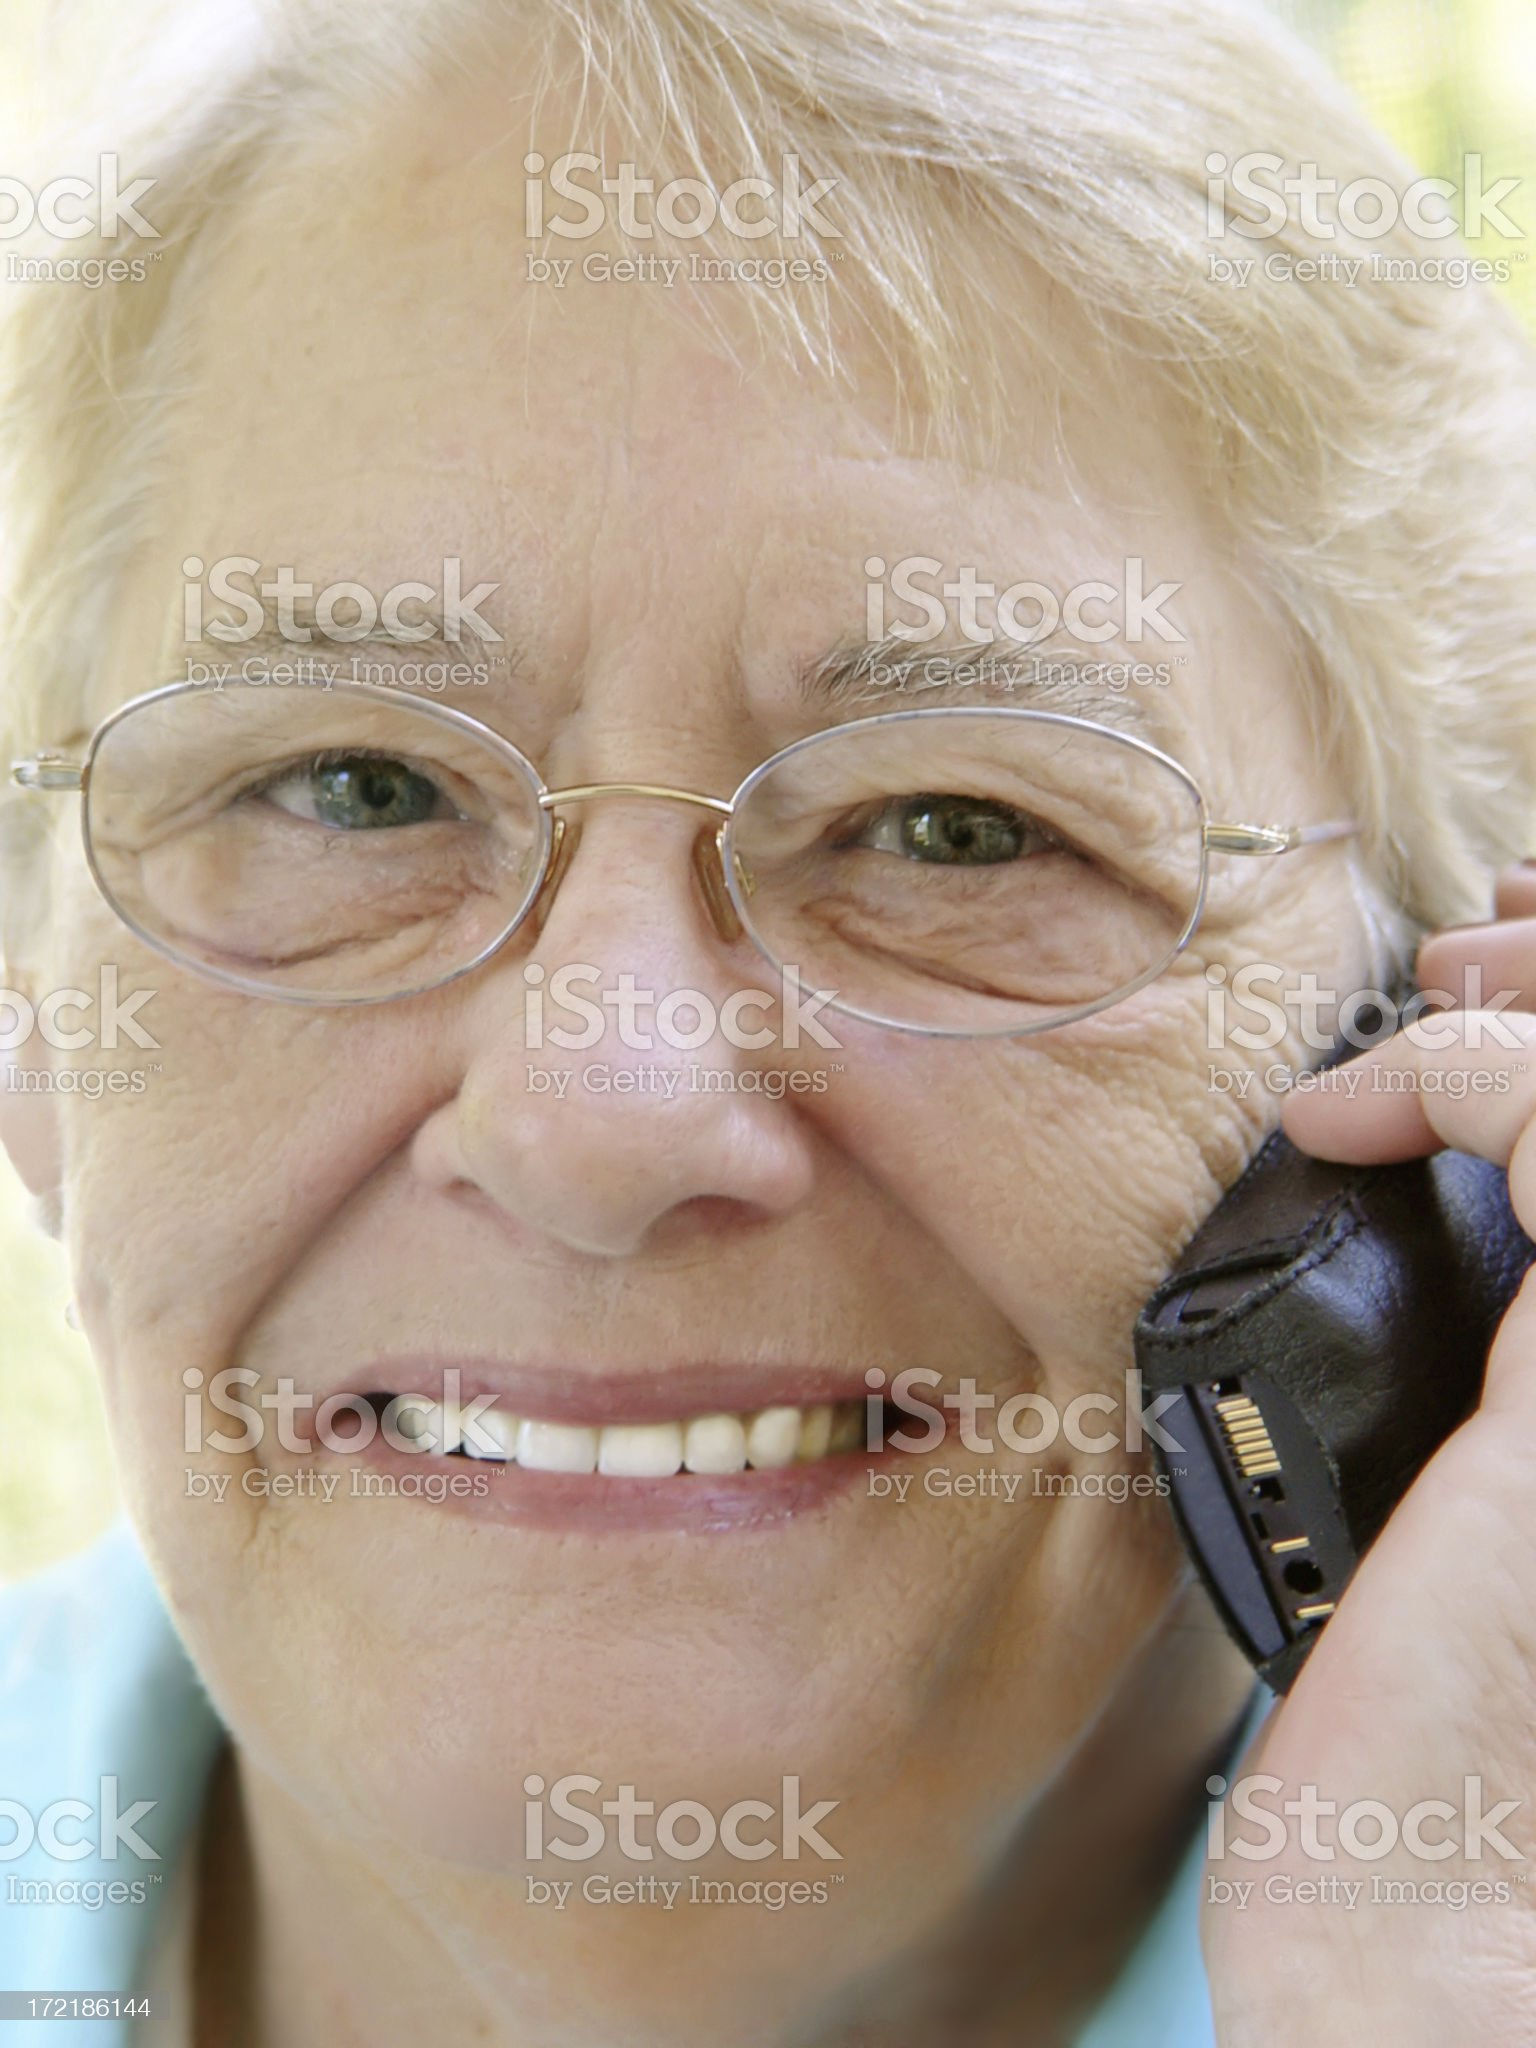 senior portrait - cell phone royalty-free stock photo